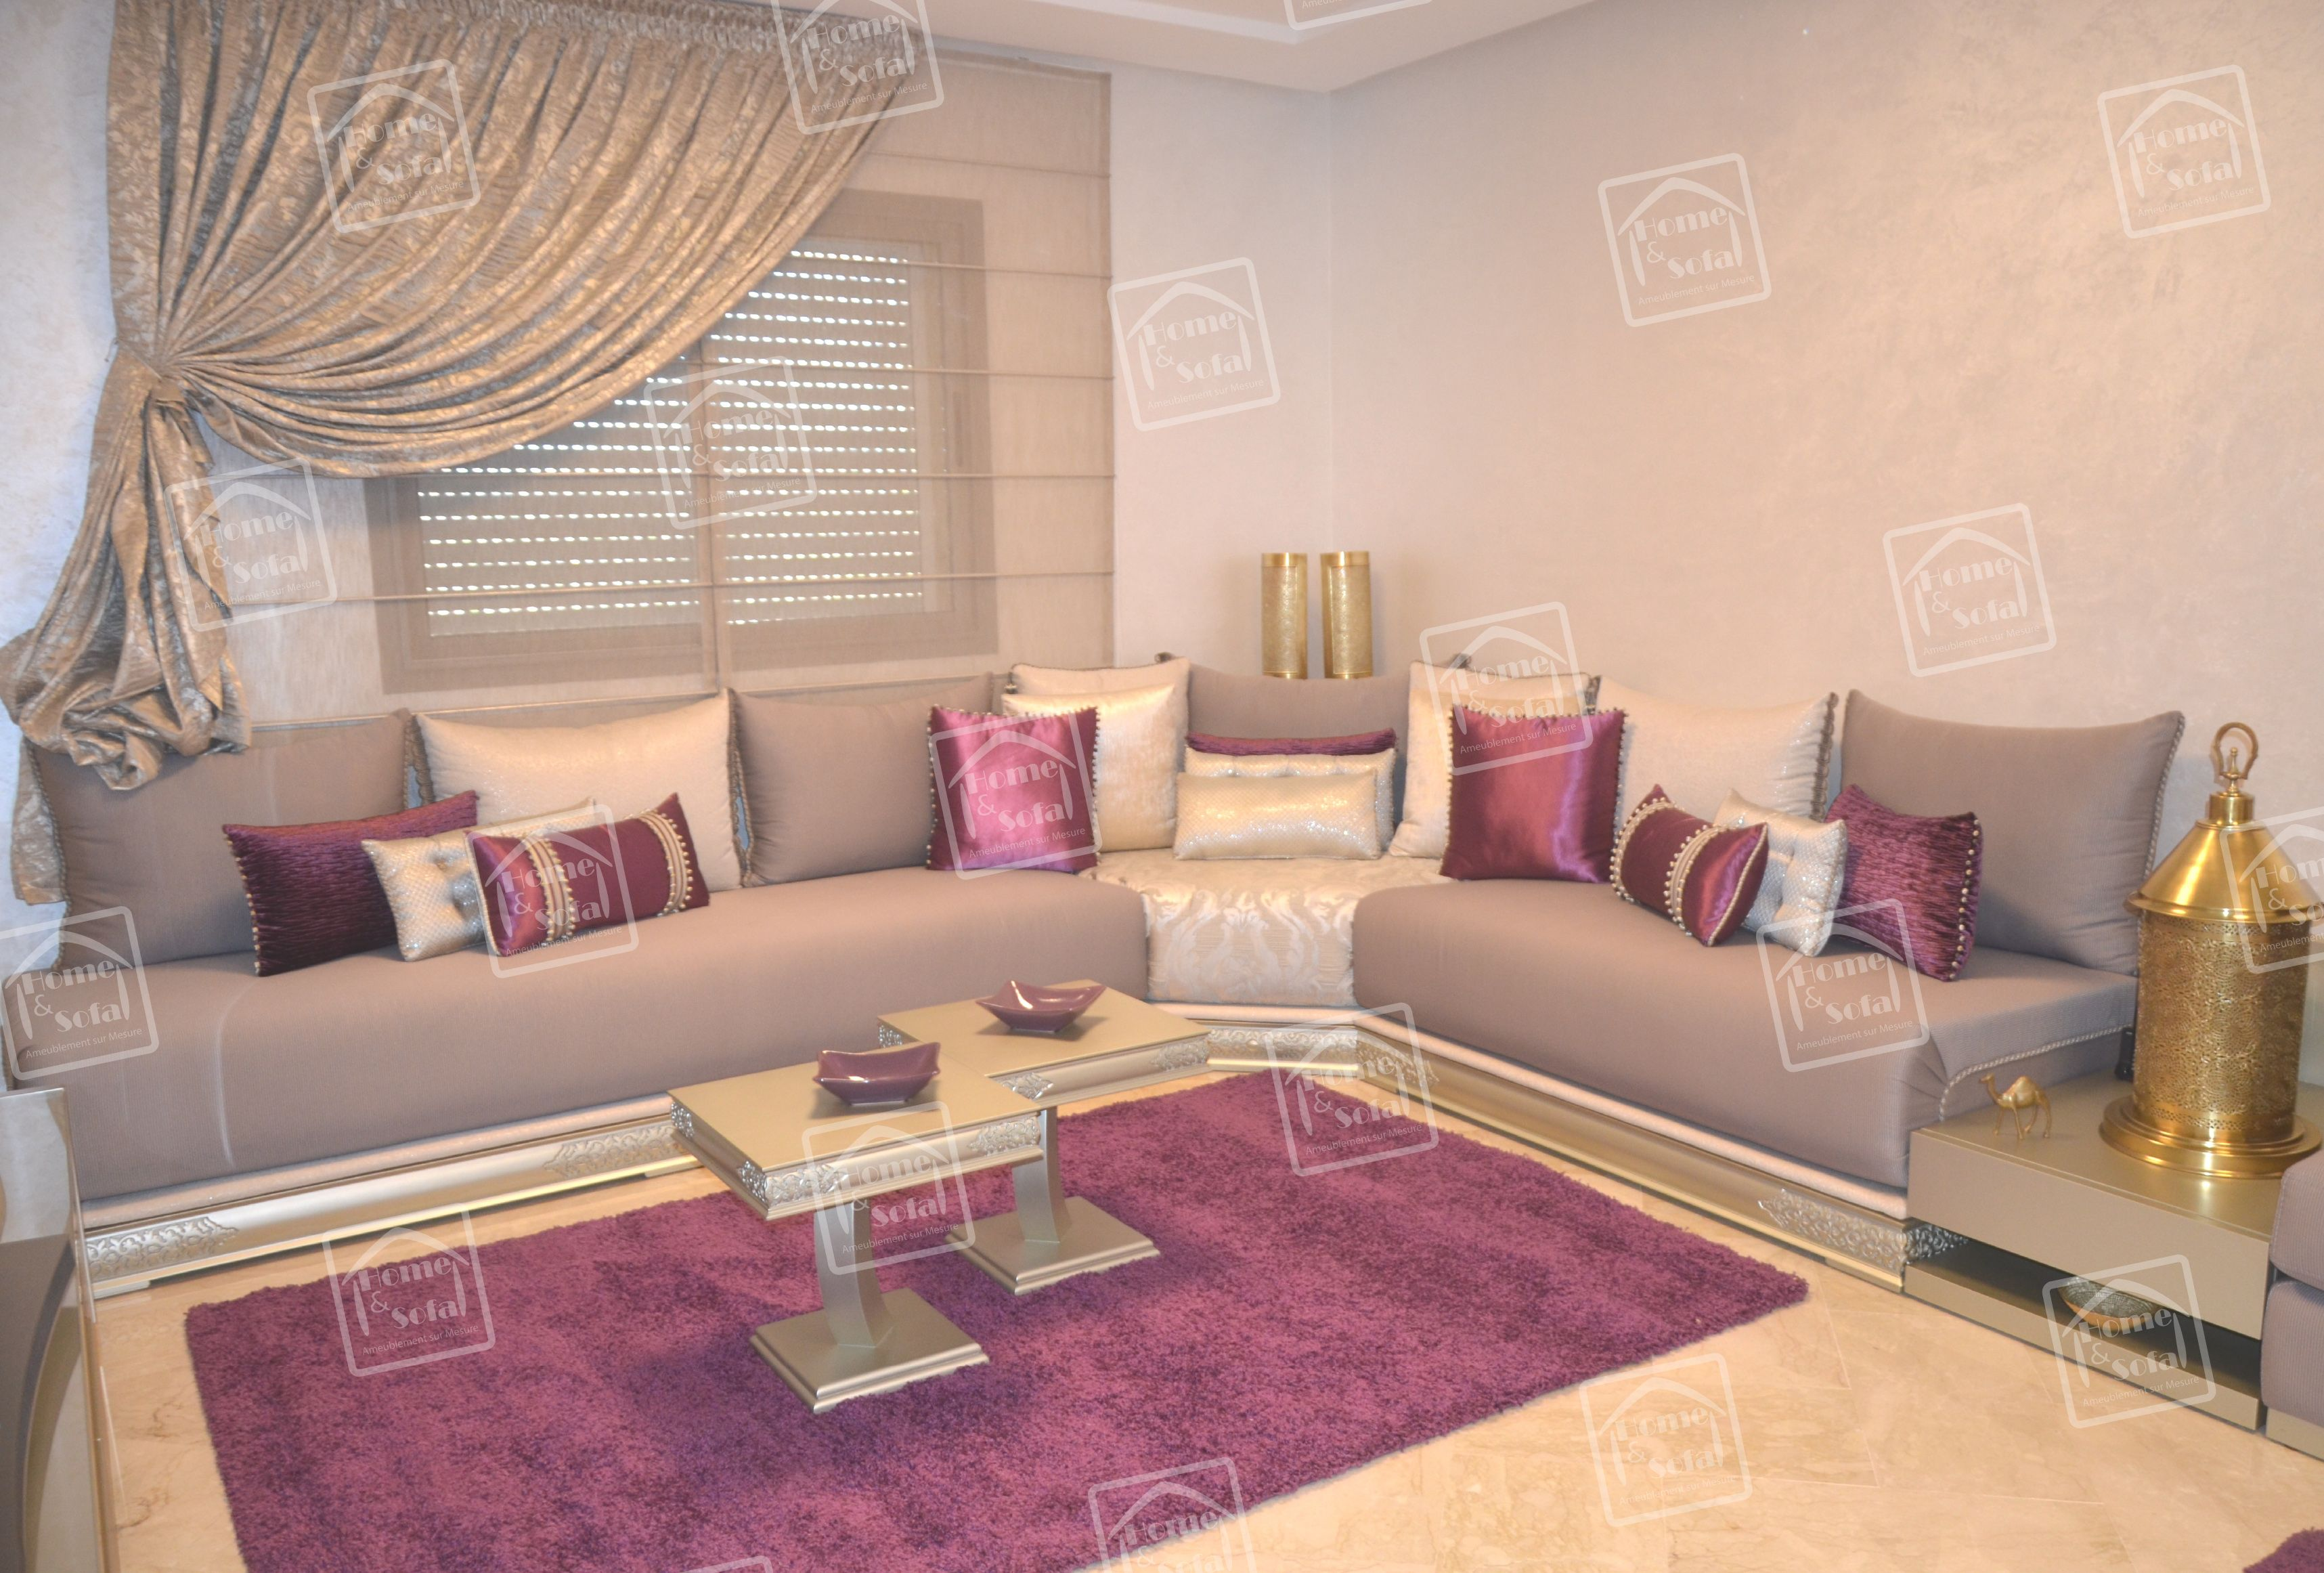 Home and Sofa - texture, agencements de couleurs et decoration